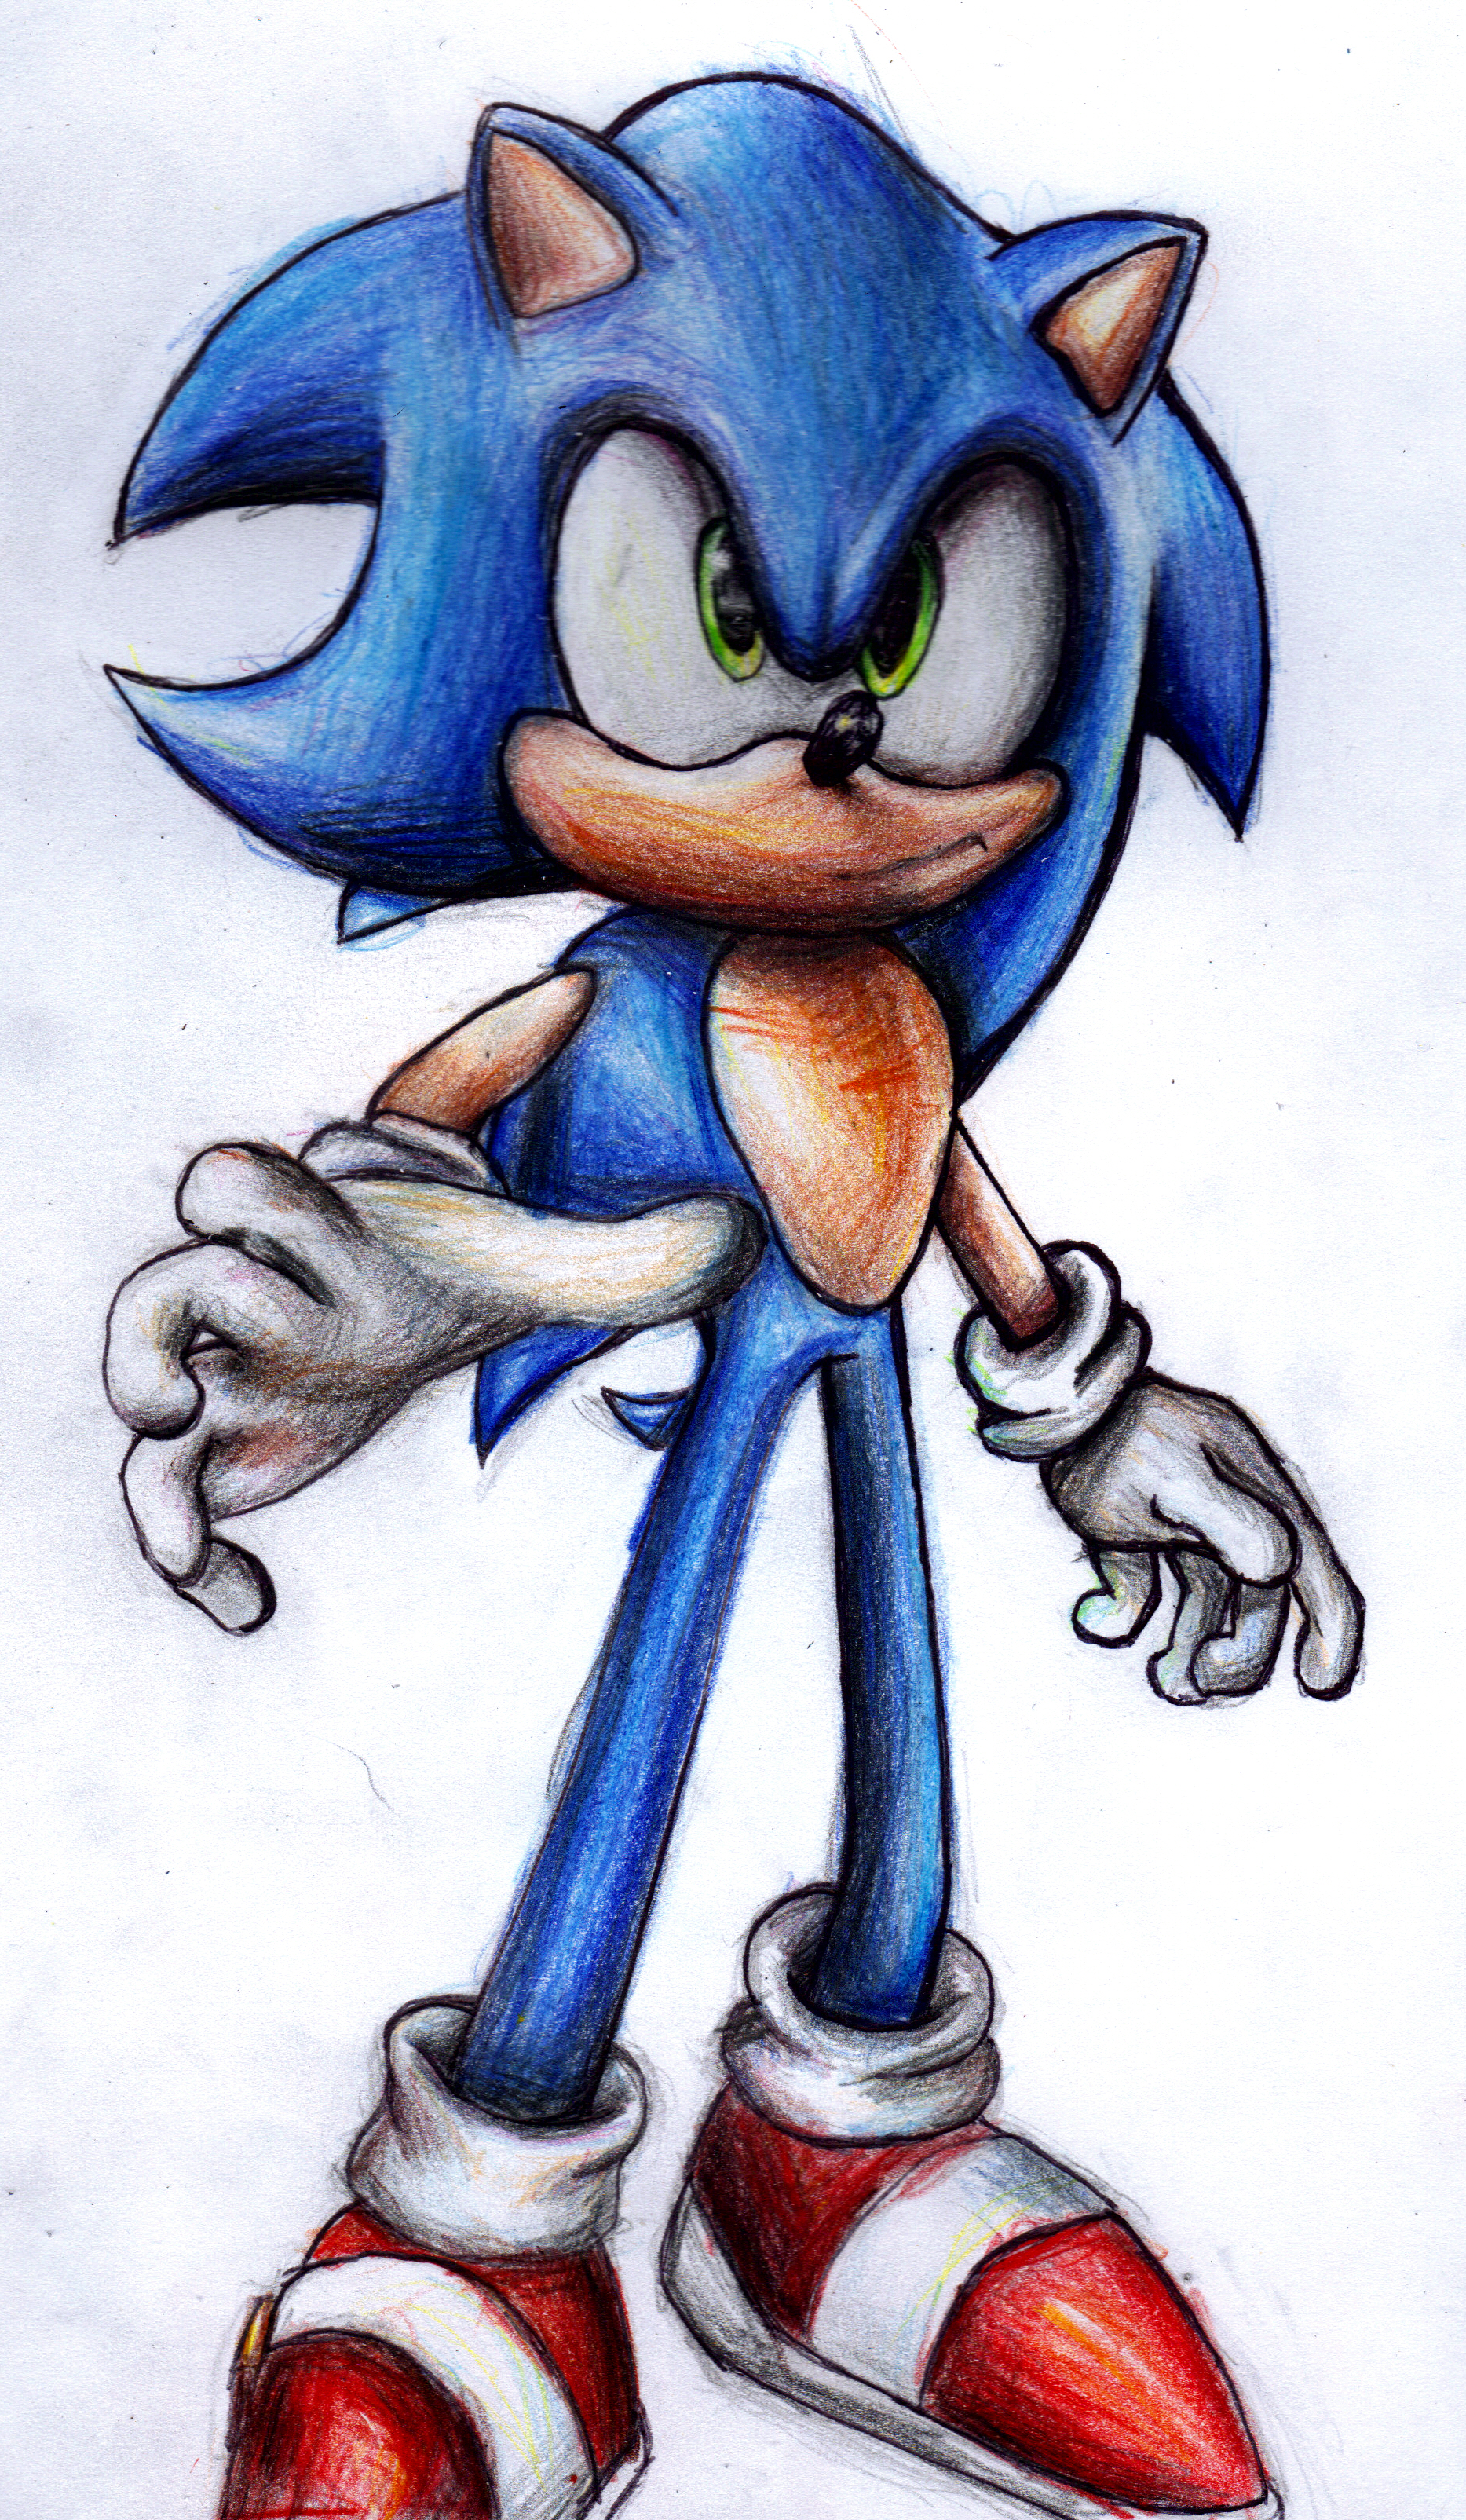 BAD Sonic Pencil Drawing by supersonicartdrawer